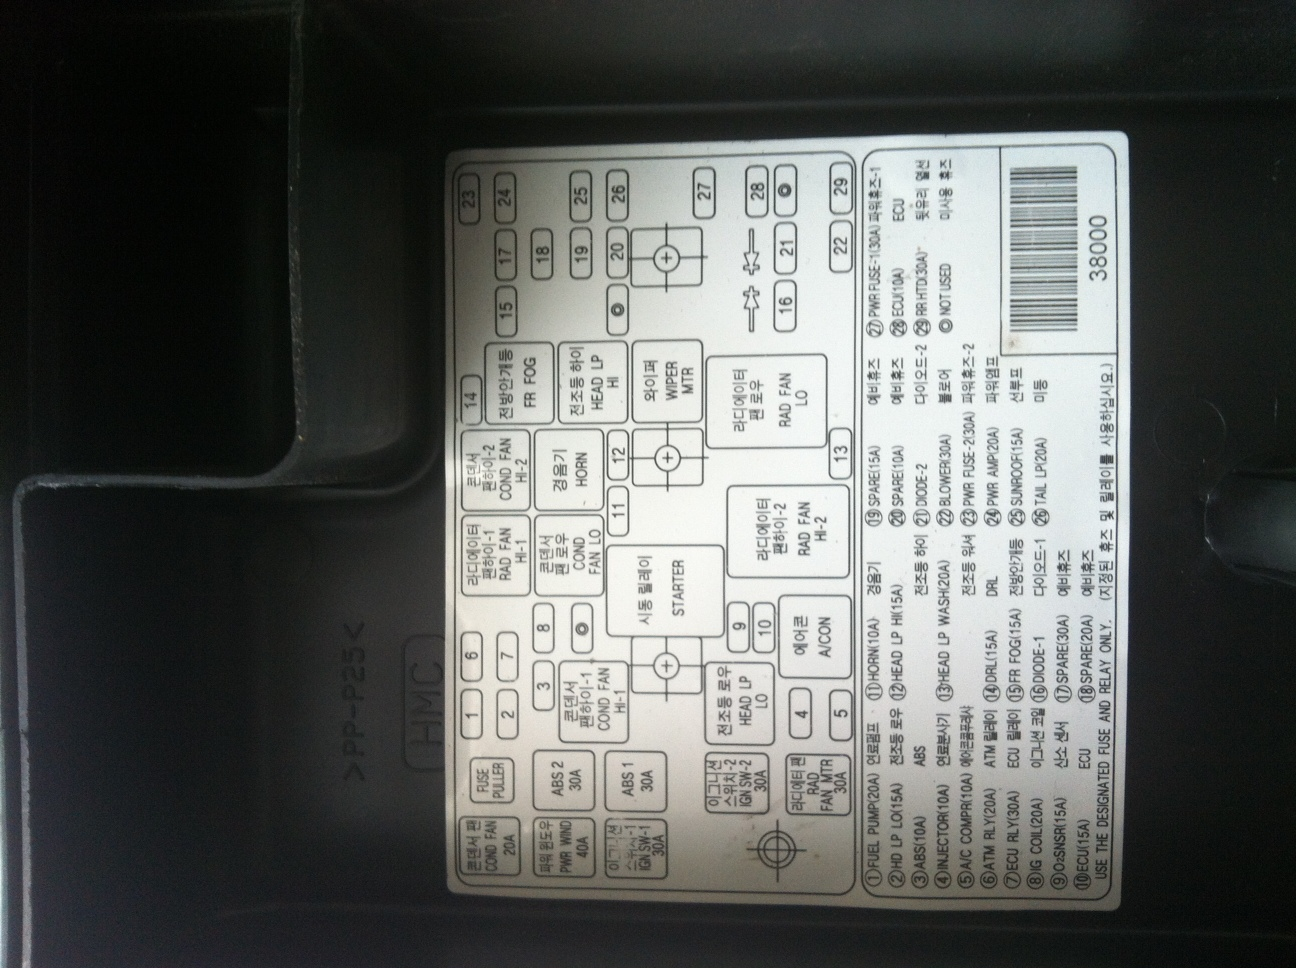 original c?garette lighter & power outlet don't work 2001 hyundai sonata fuse box diagram at n-0.co